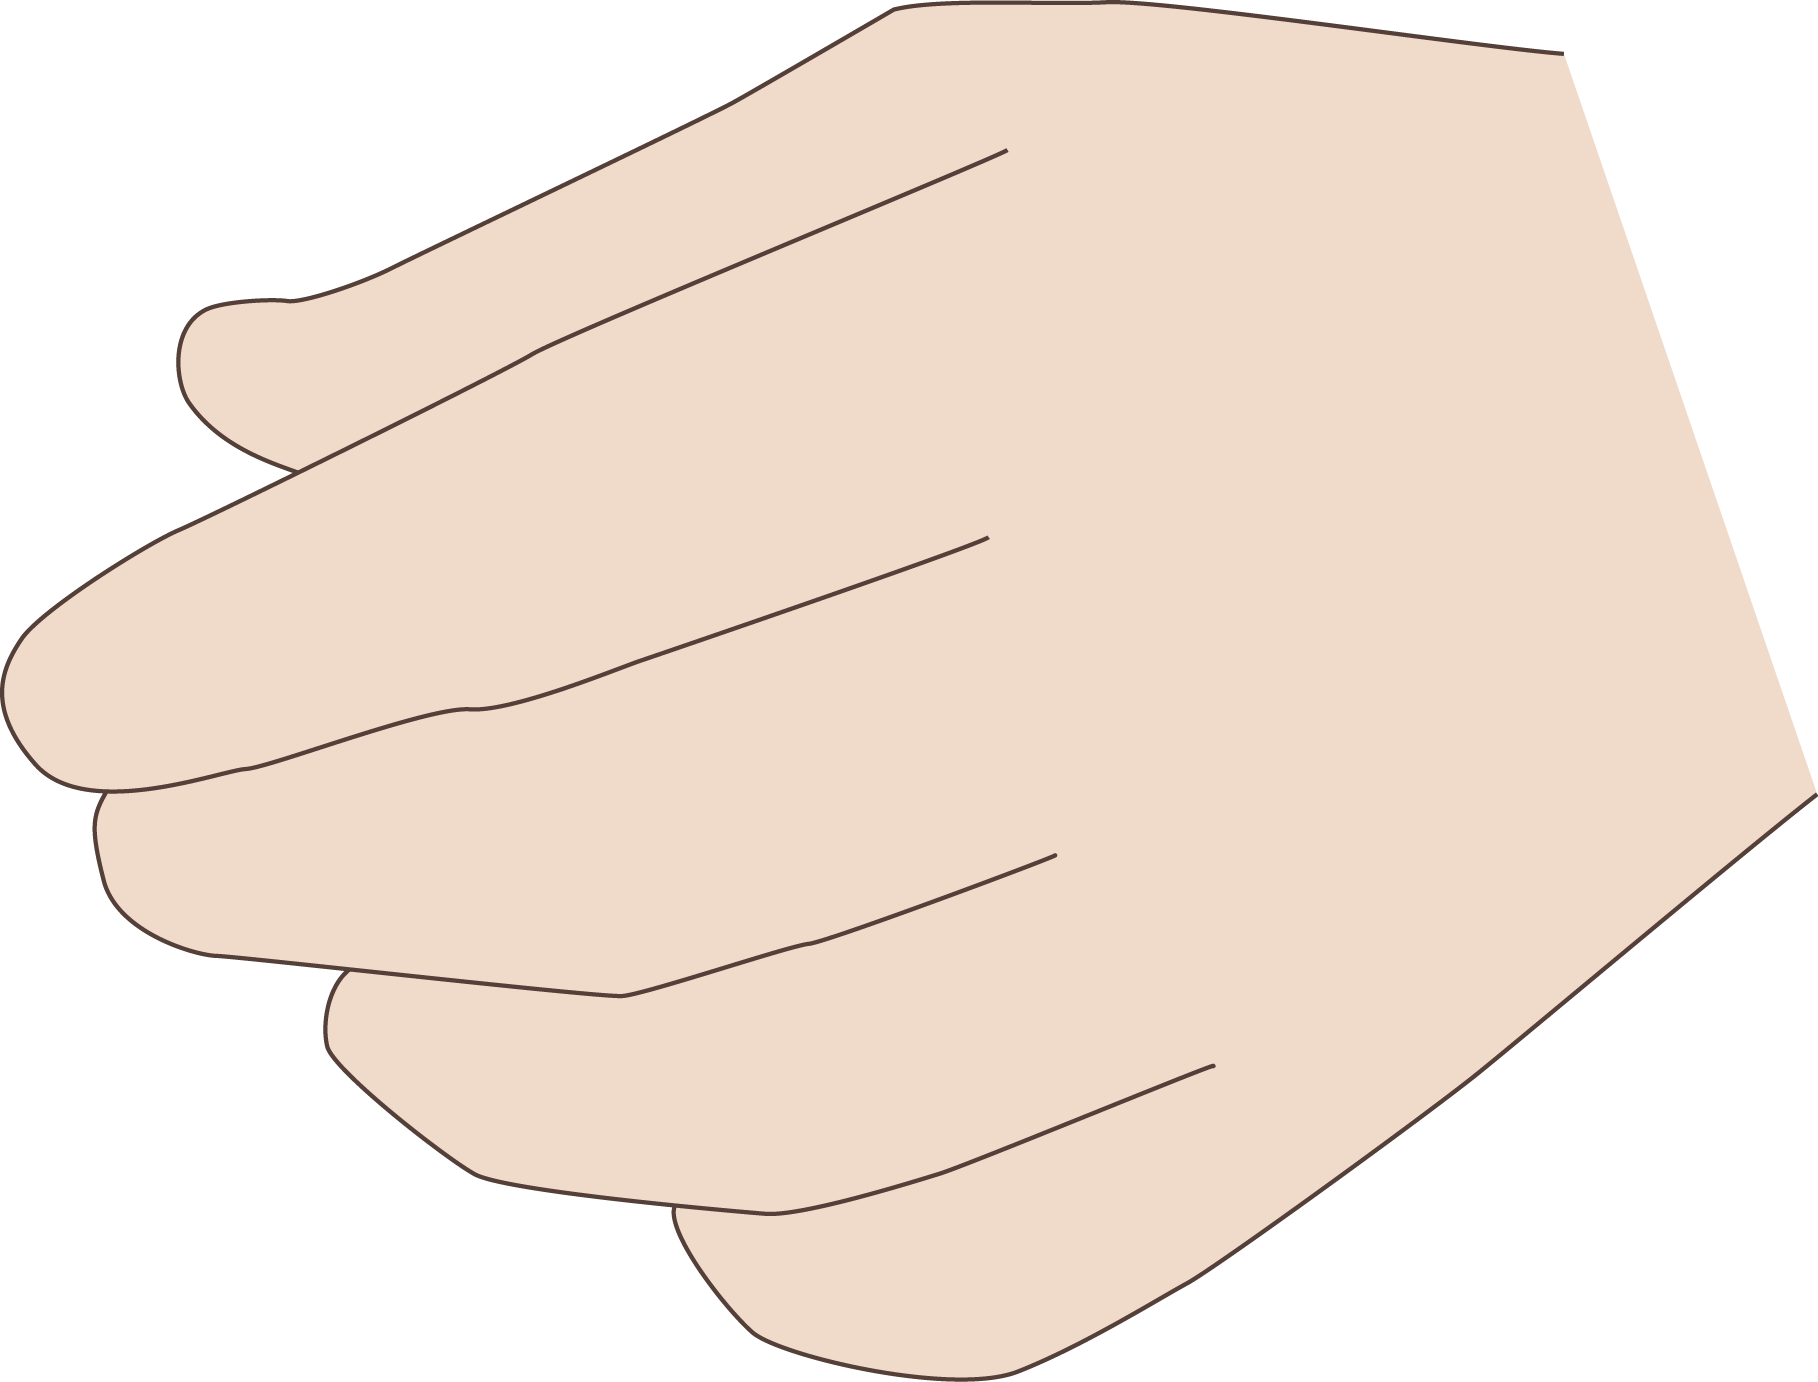 Finger clipart hand span. Coding manual all fingers